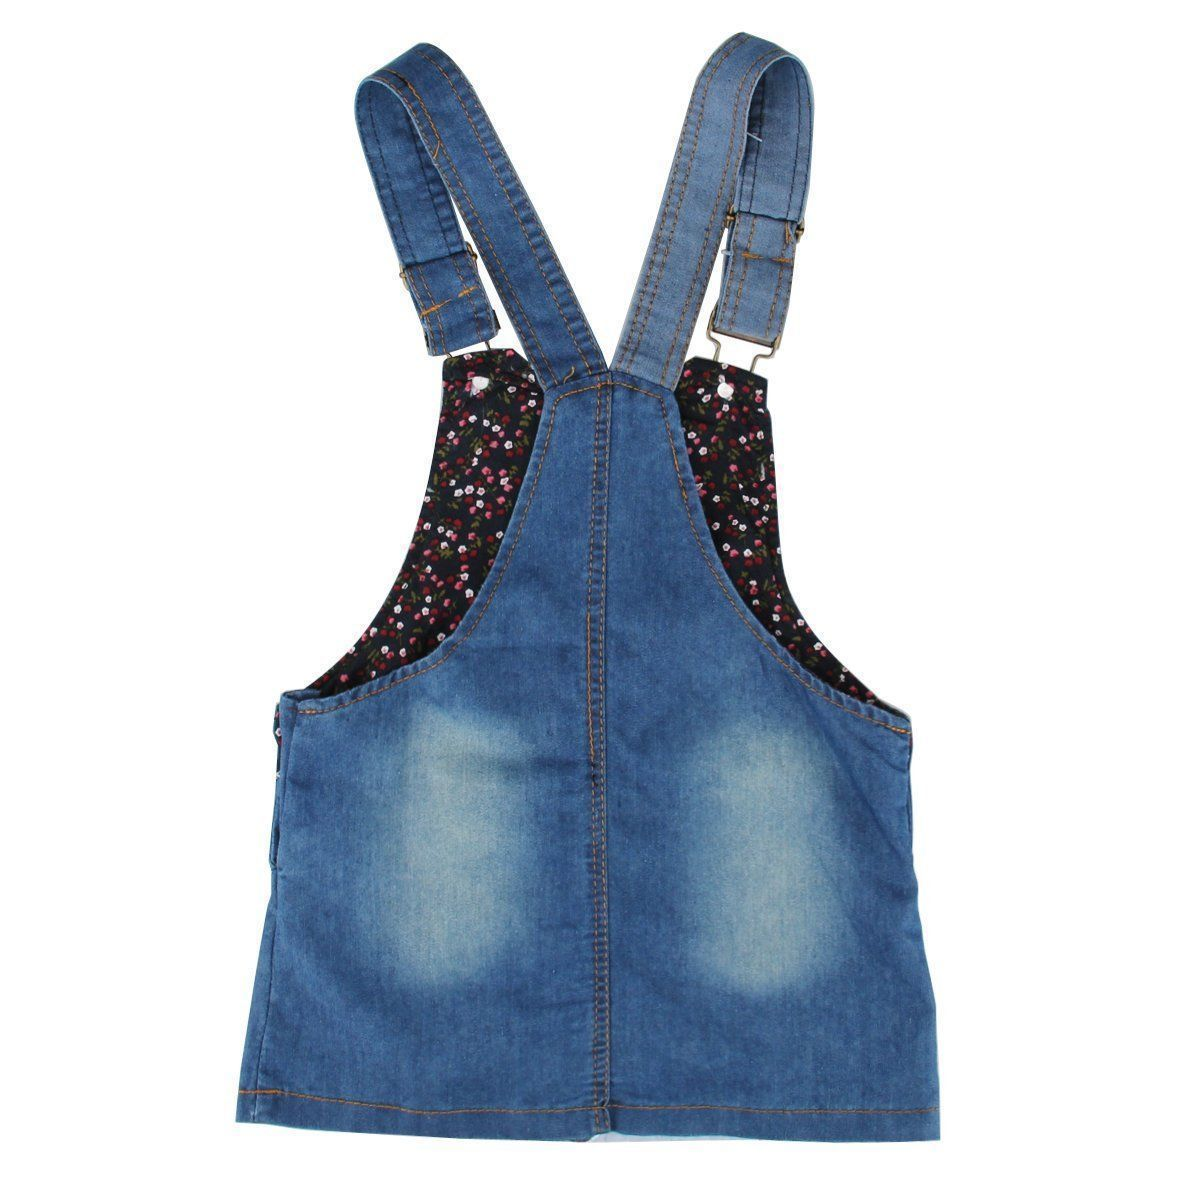 Summer Kids Girls Dress Denim Overalls Dresses Braces Clothes For Age 2-7 Years Kids 2